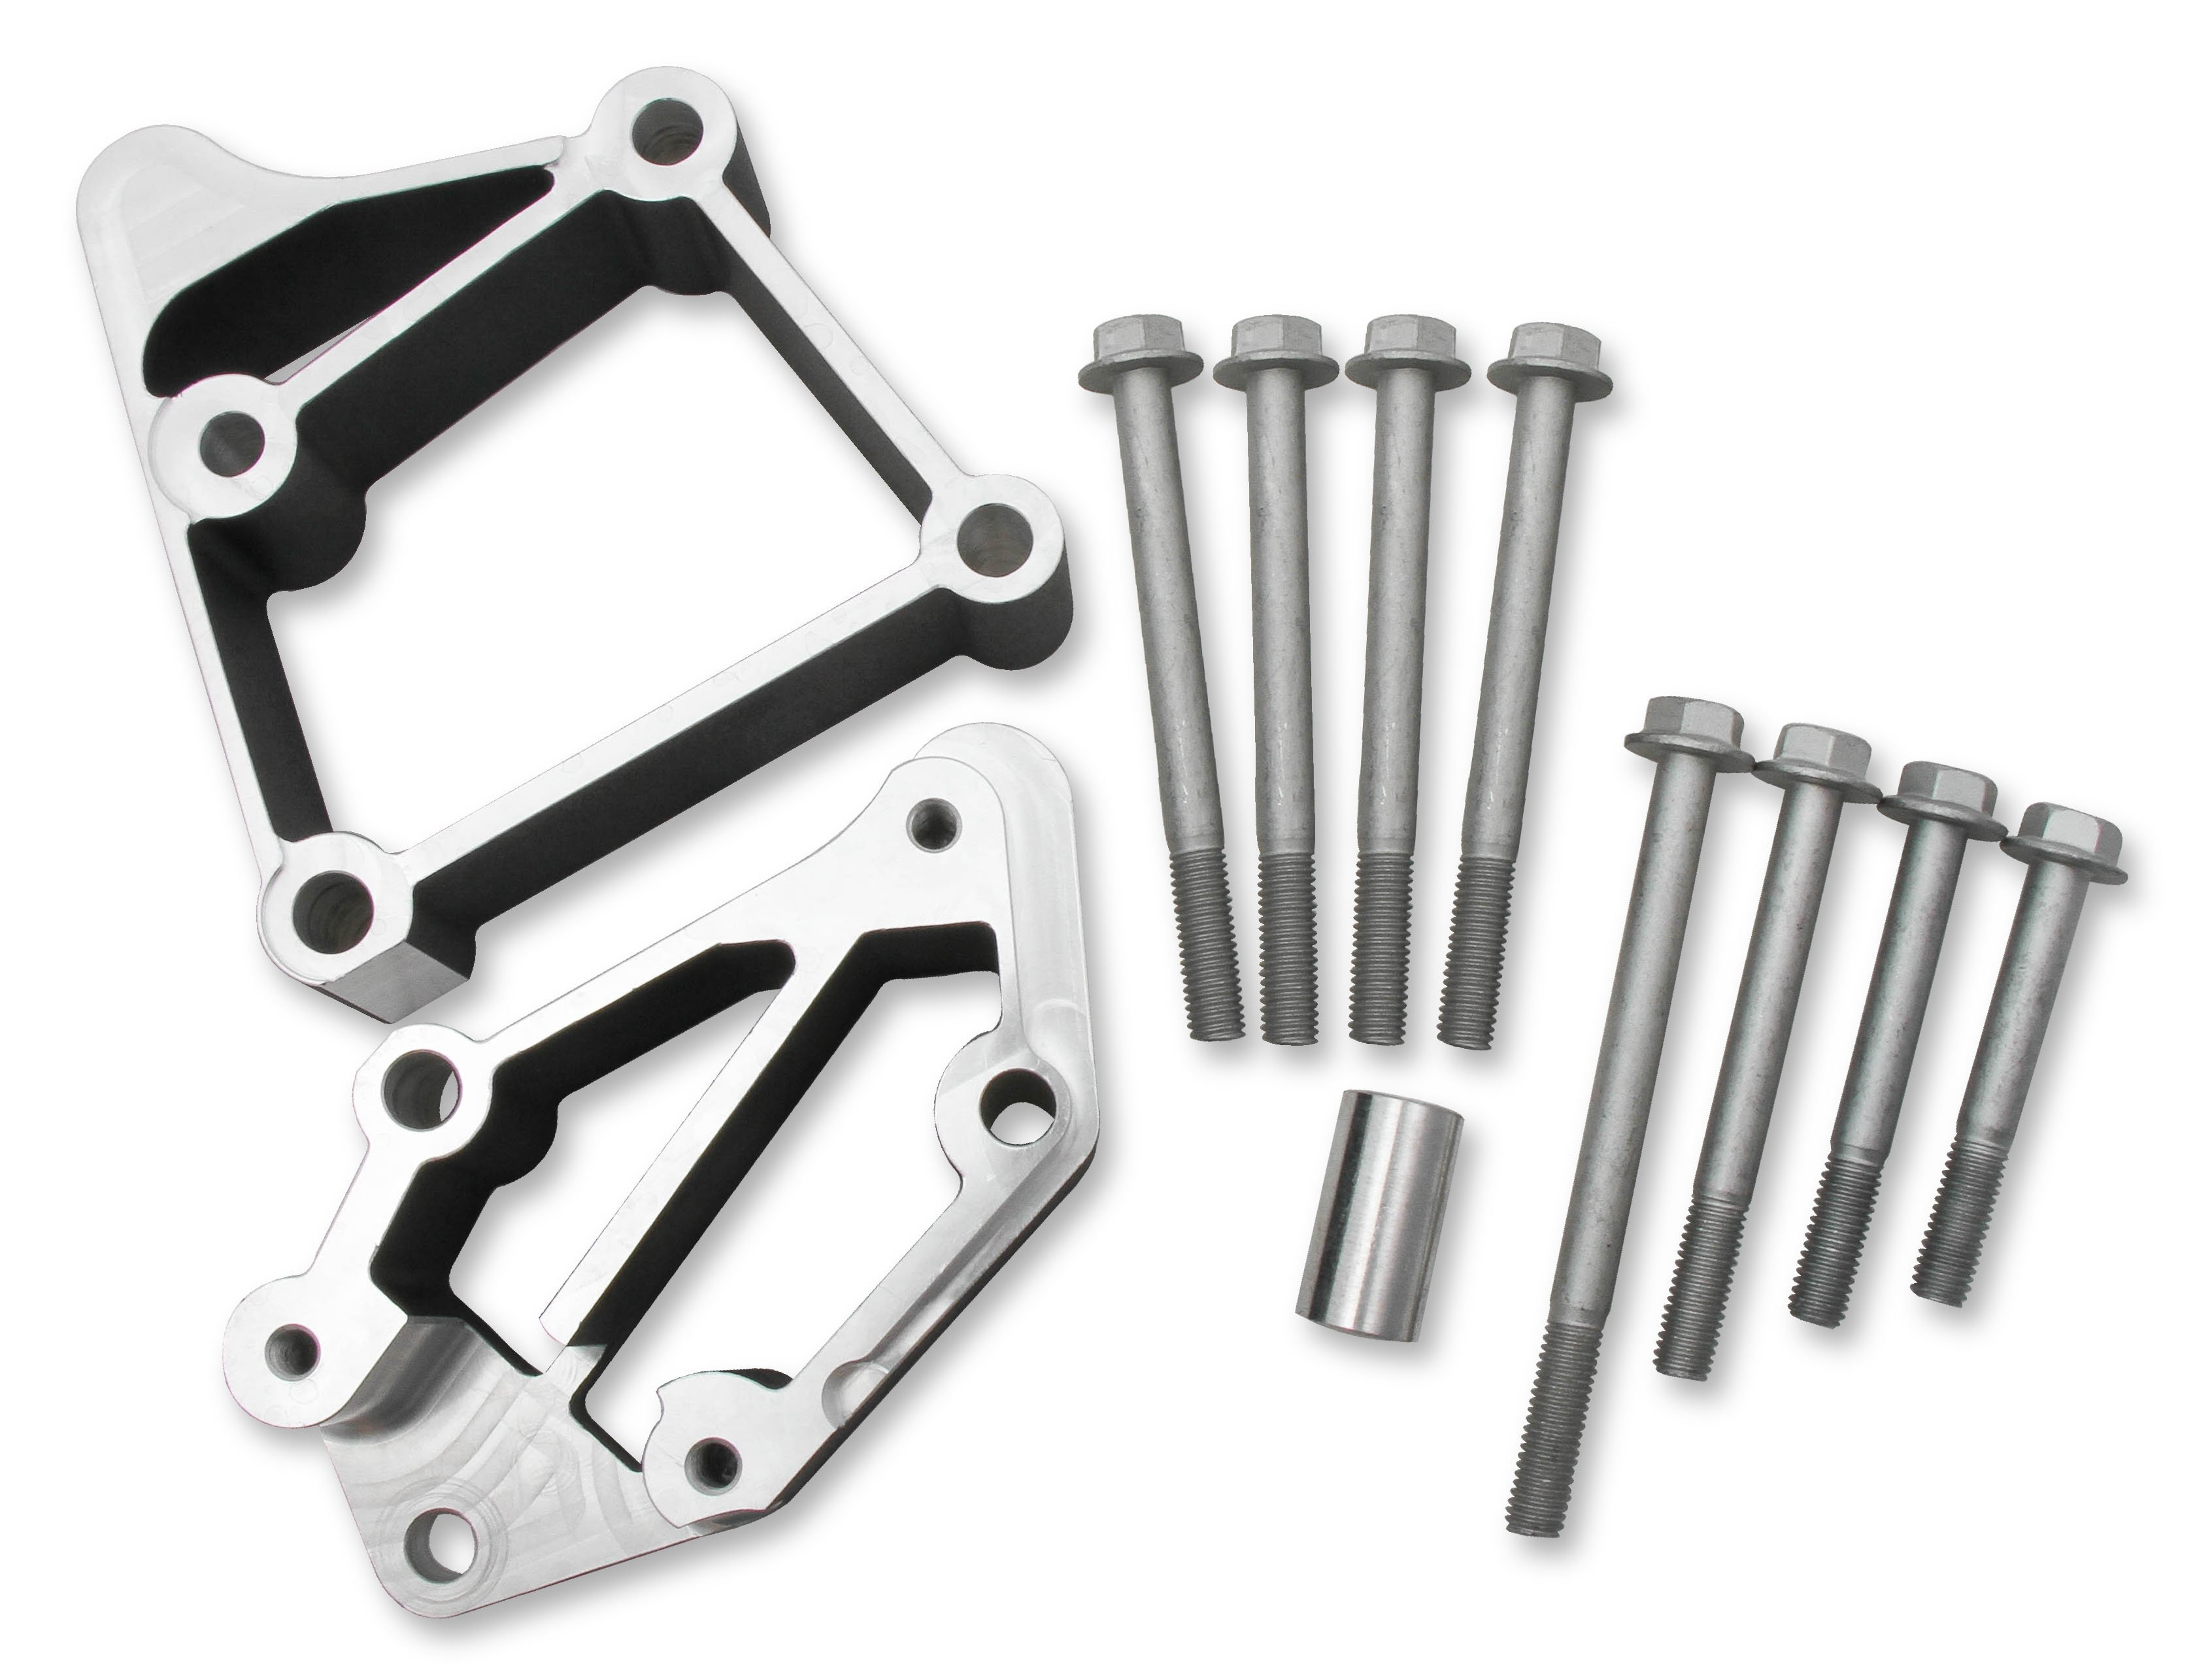 Holley 21-1 LS Accessory Drive Bracket Kit